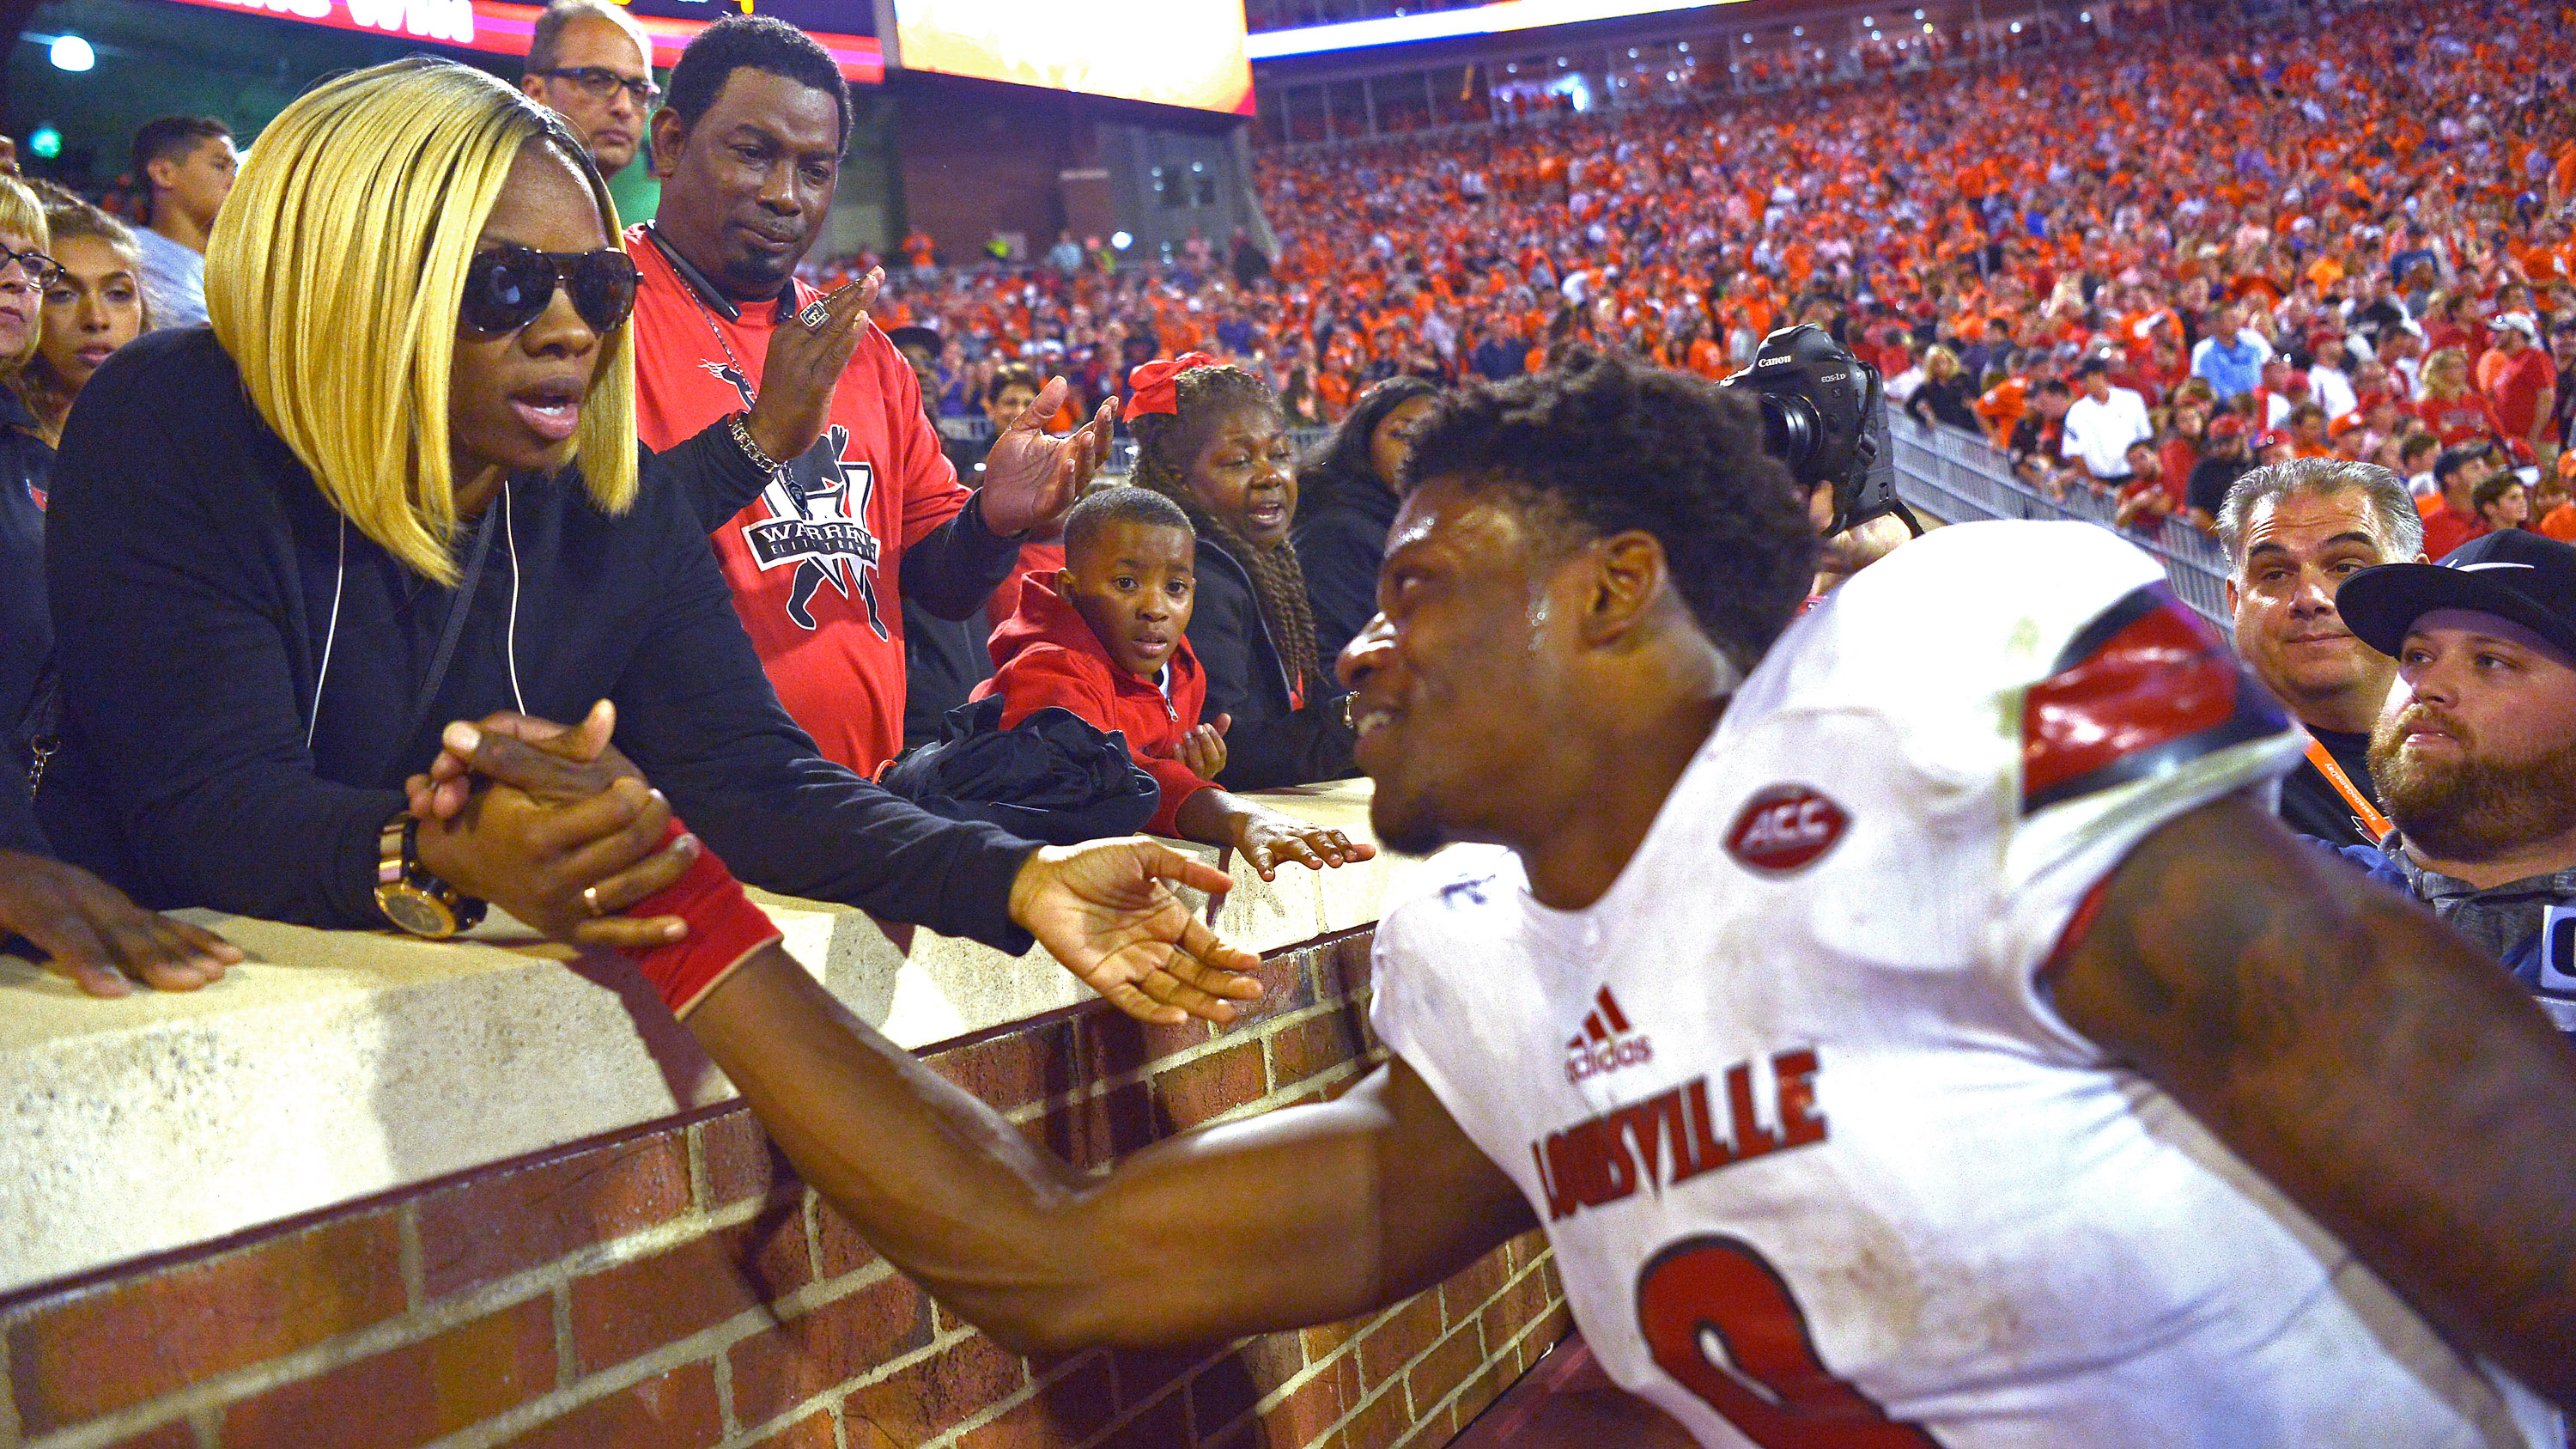 Nfl Combine 2018 Lamar Jackson S Mom To Represent Heisman Winner Other Observations Wusa9 Com